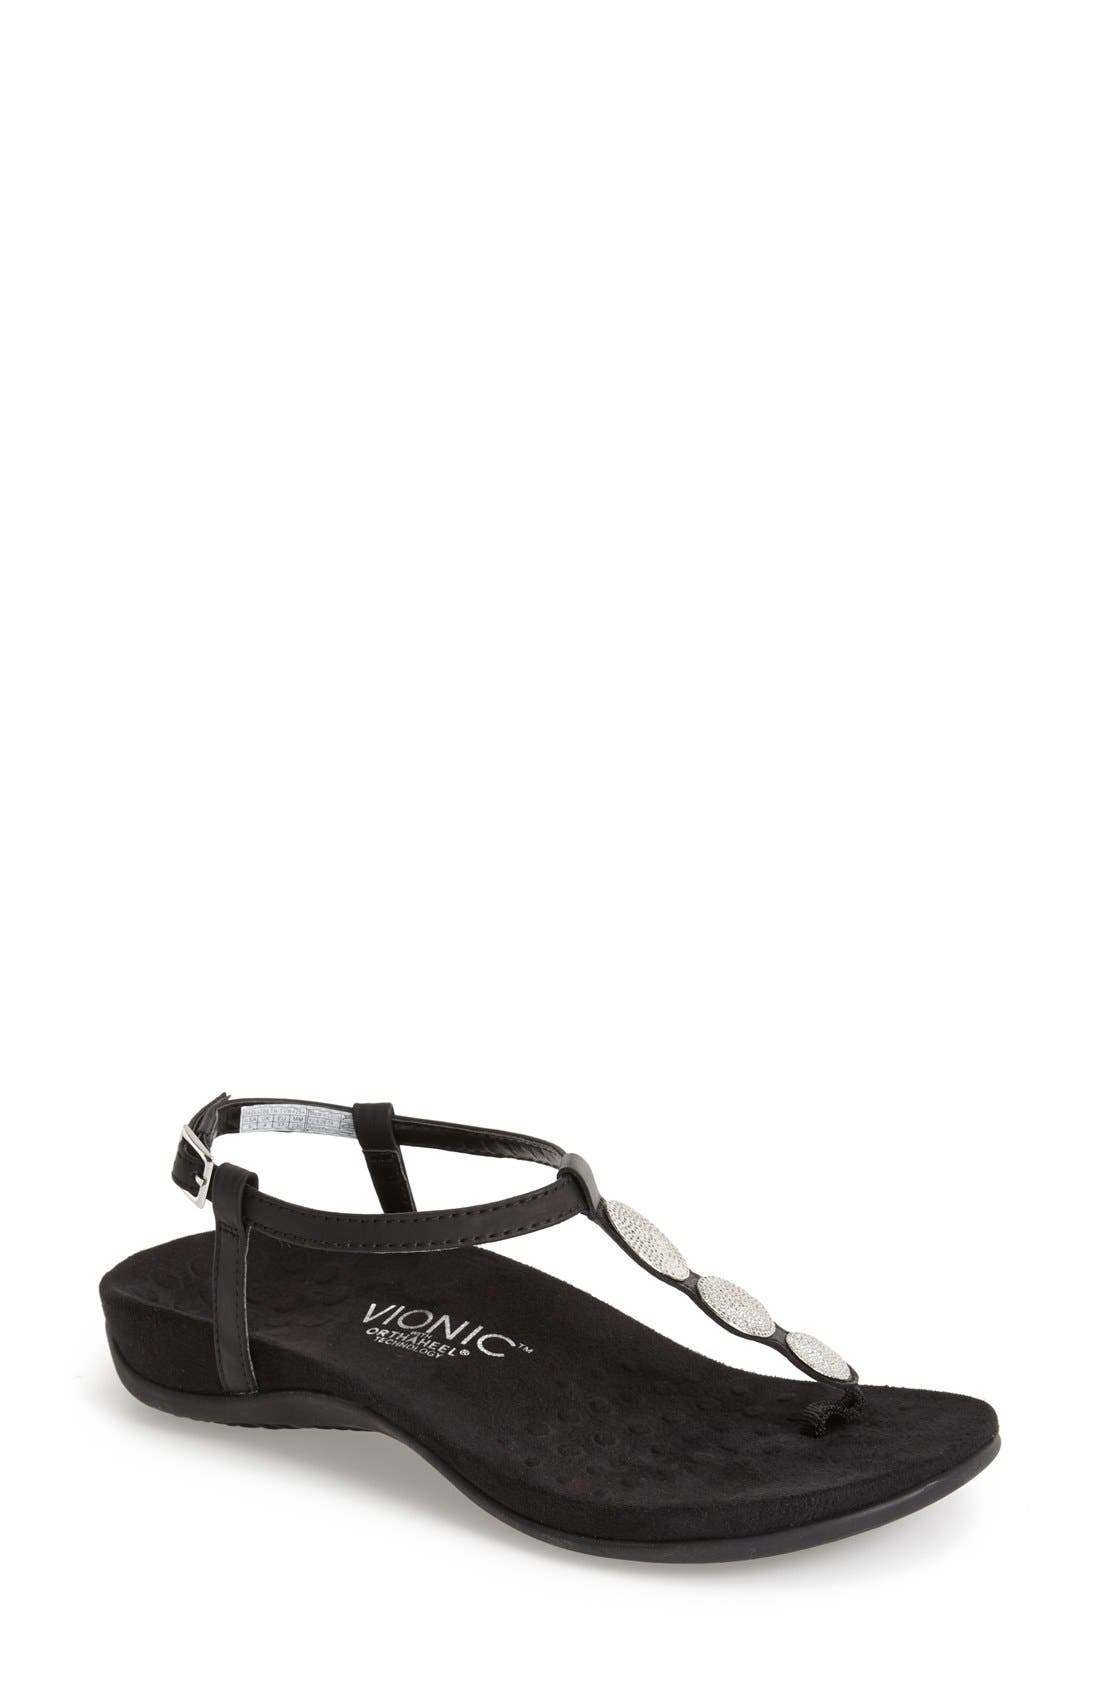 Main Image - Vionic 'Lizbeth' Thong Sandal (Women)